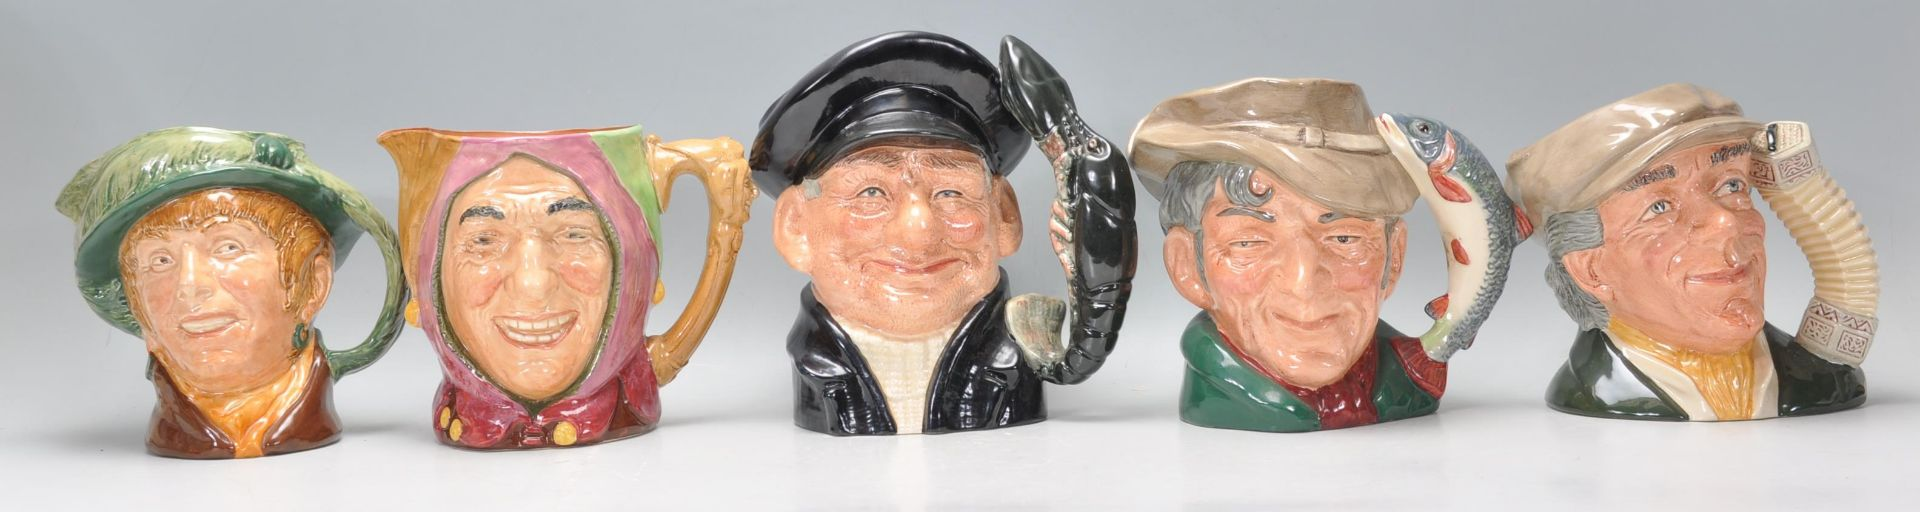 Los 12 - A group of fiveRoyal Doulton ceramic Character /